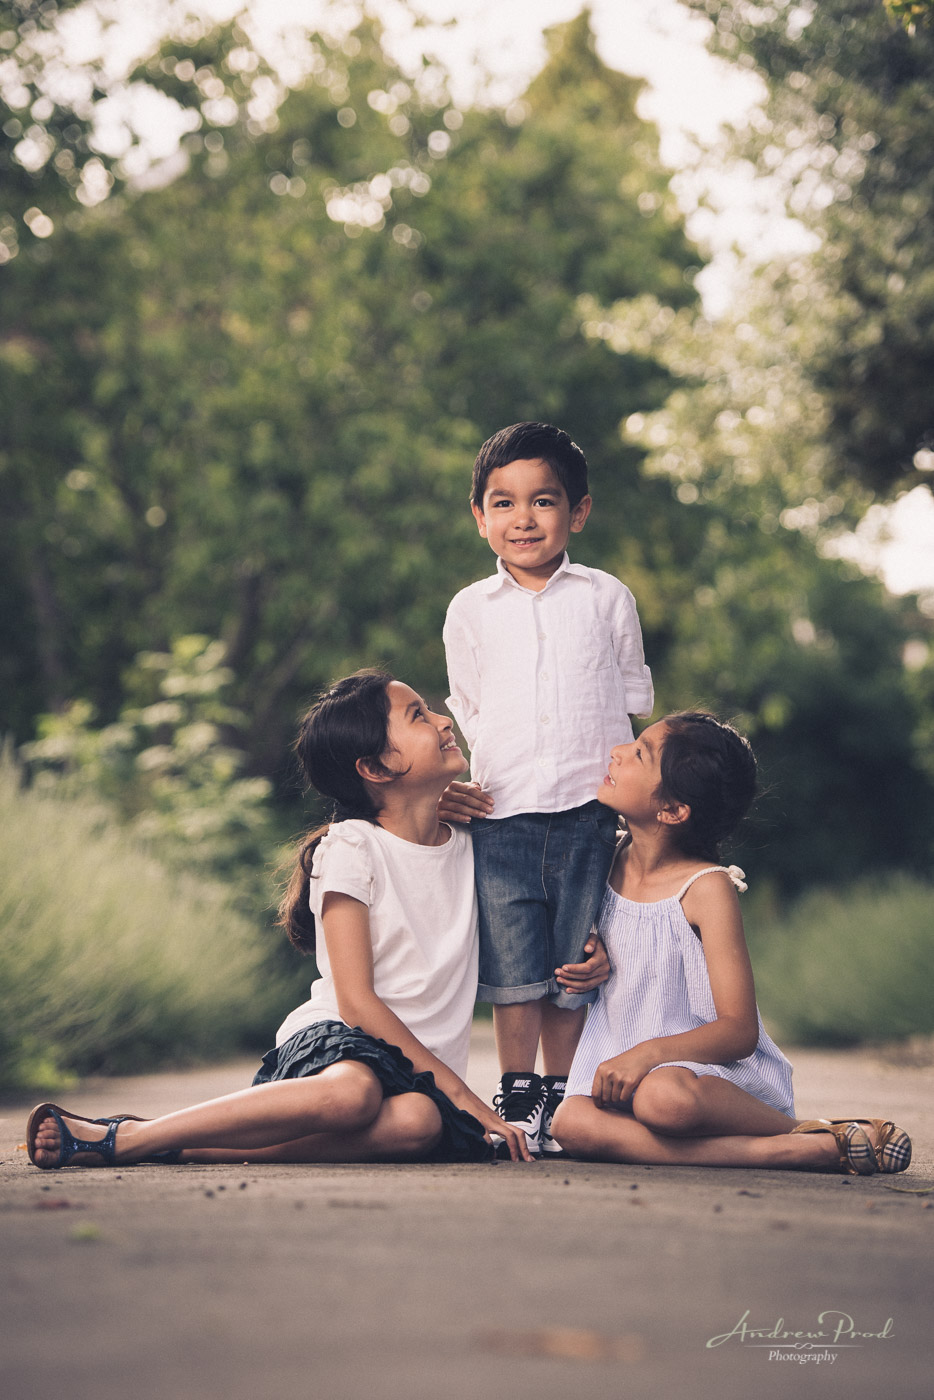 Siblings photoshoot